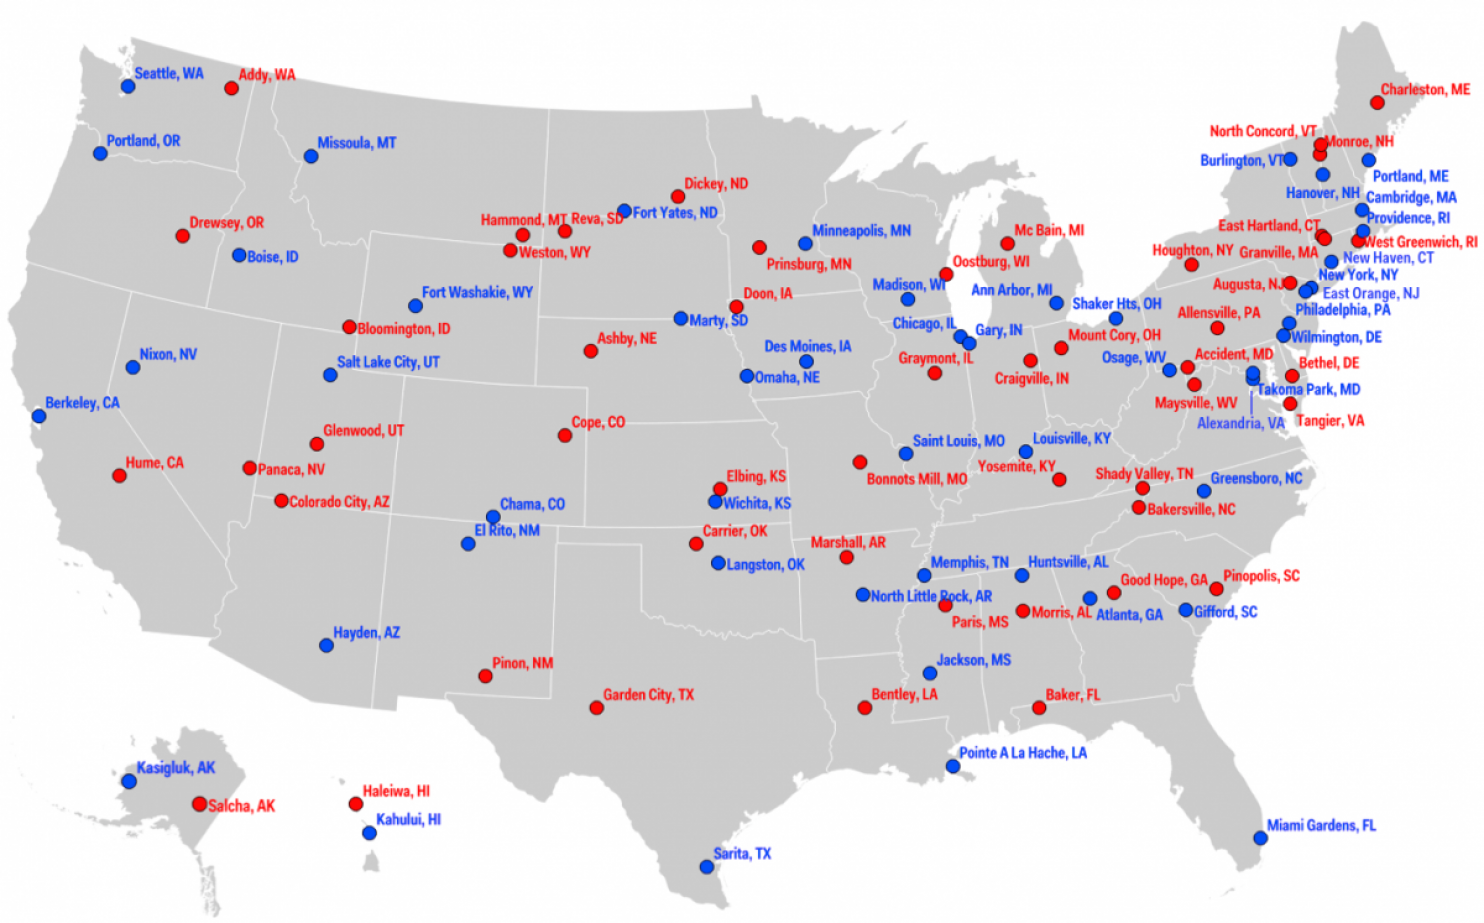 Map The Most Liberal And Conservative Towns In Each State - World Map Of People Who Want Into The Us